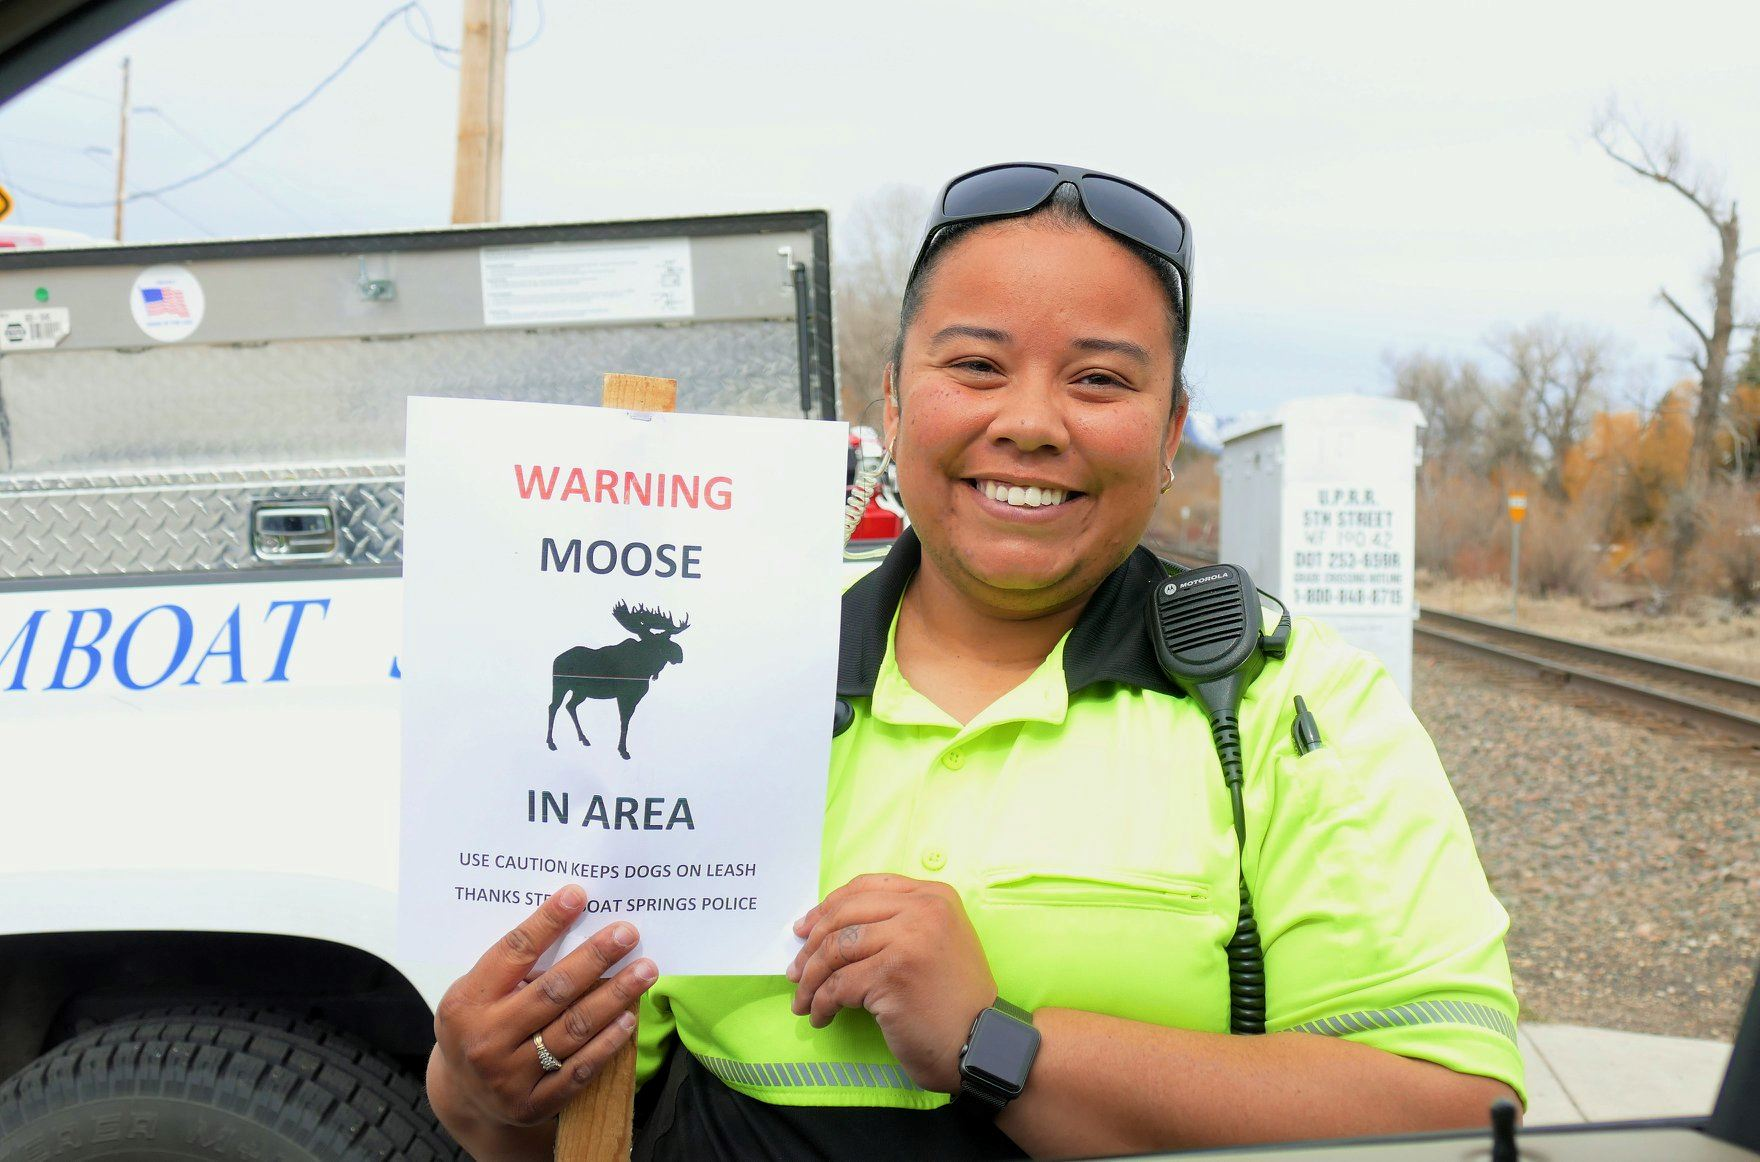 Community Service Officer Moose Warning